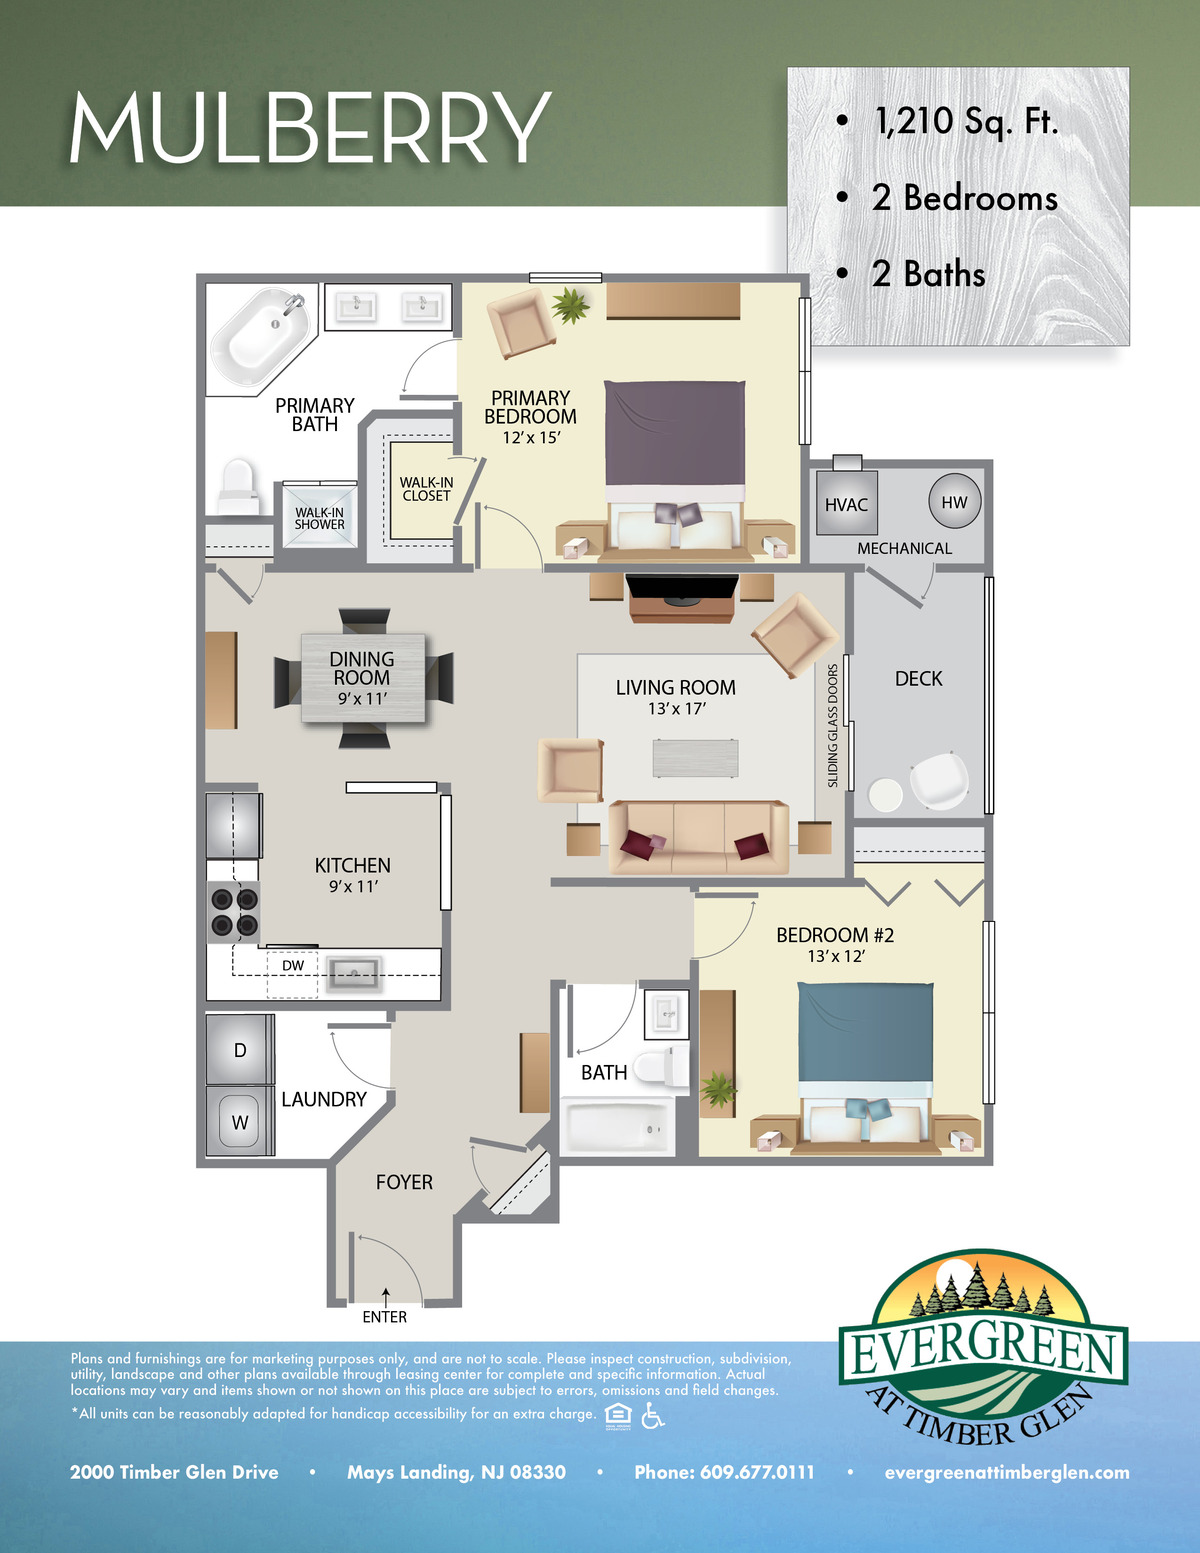 Evergreen At Timberglen Floor Plan Mulberry